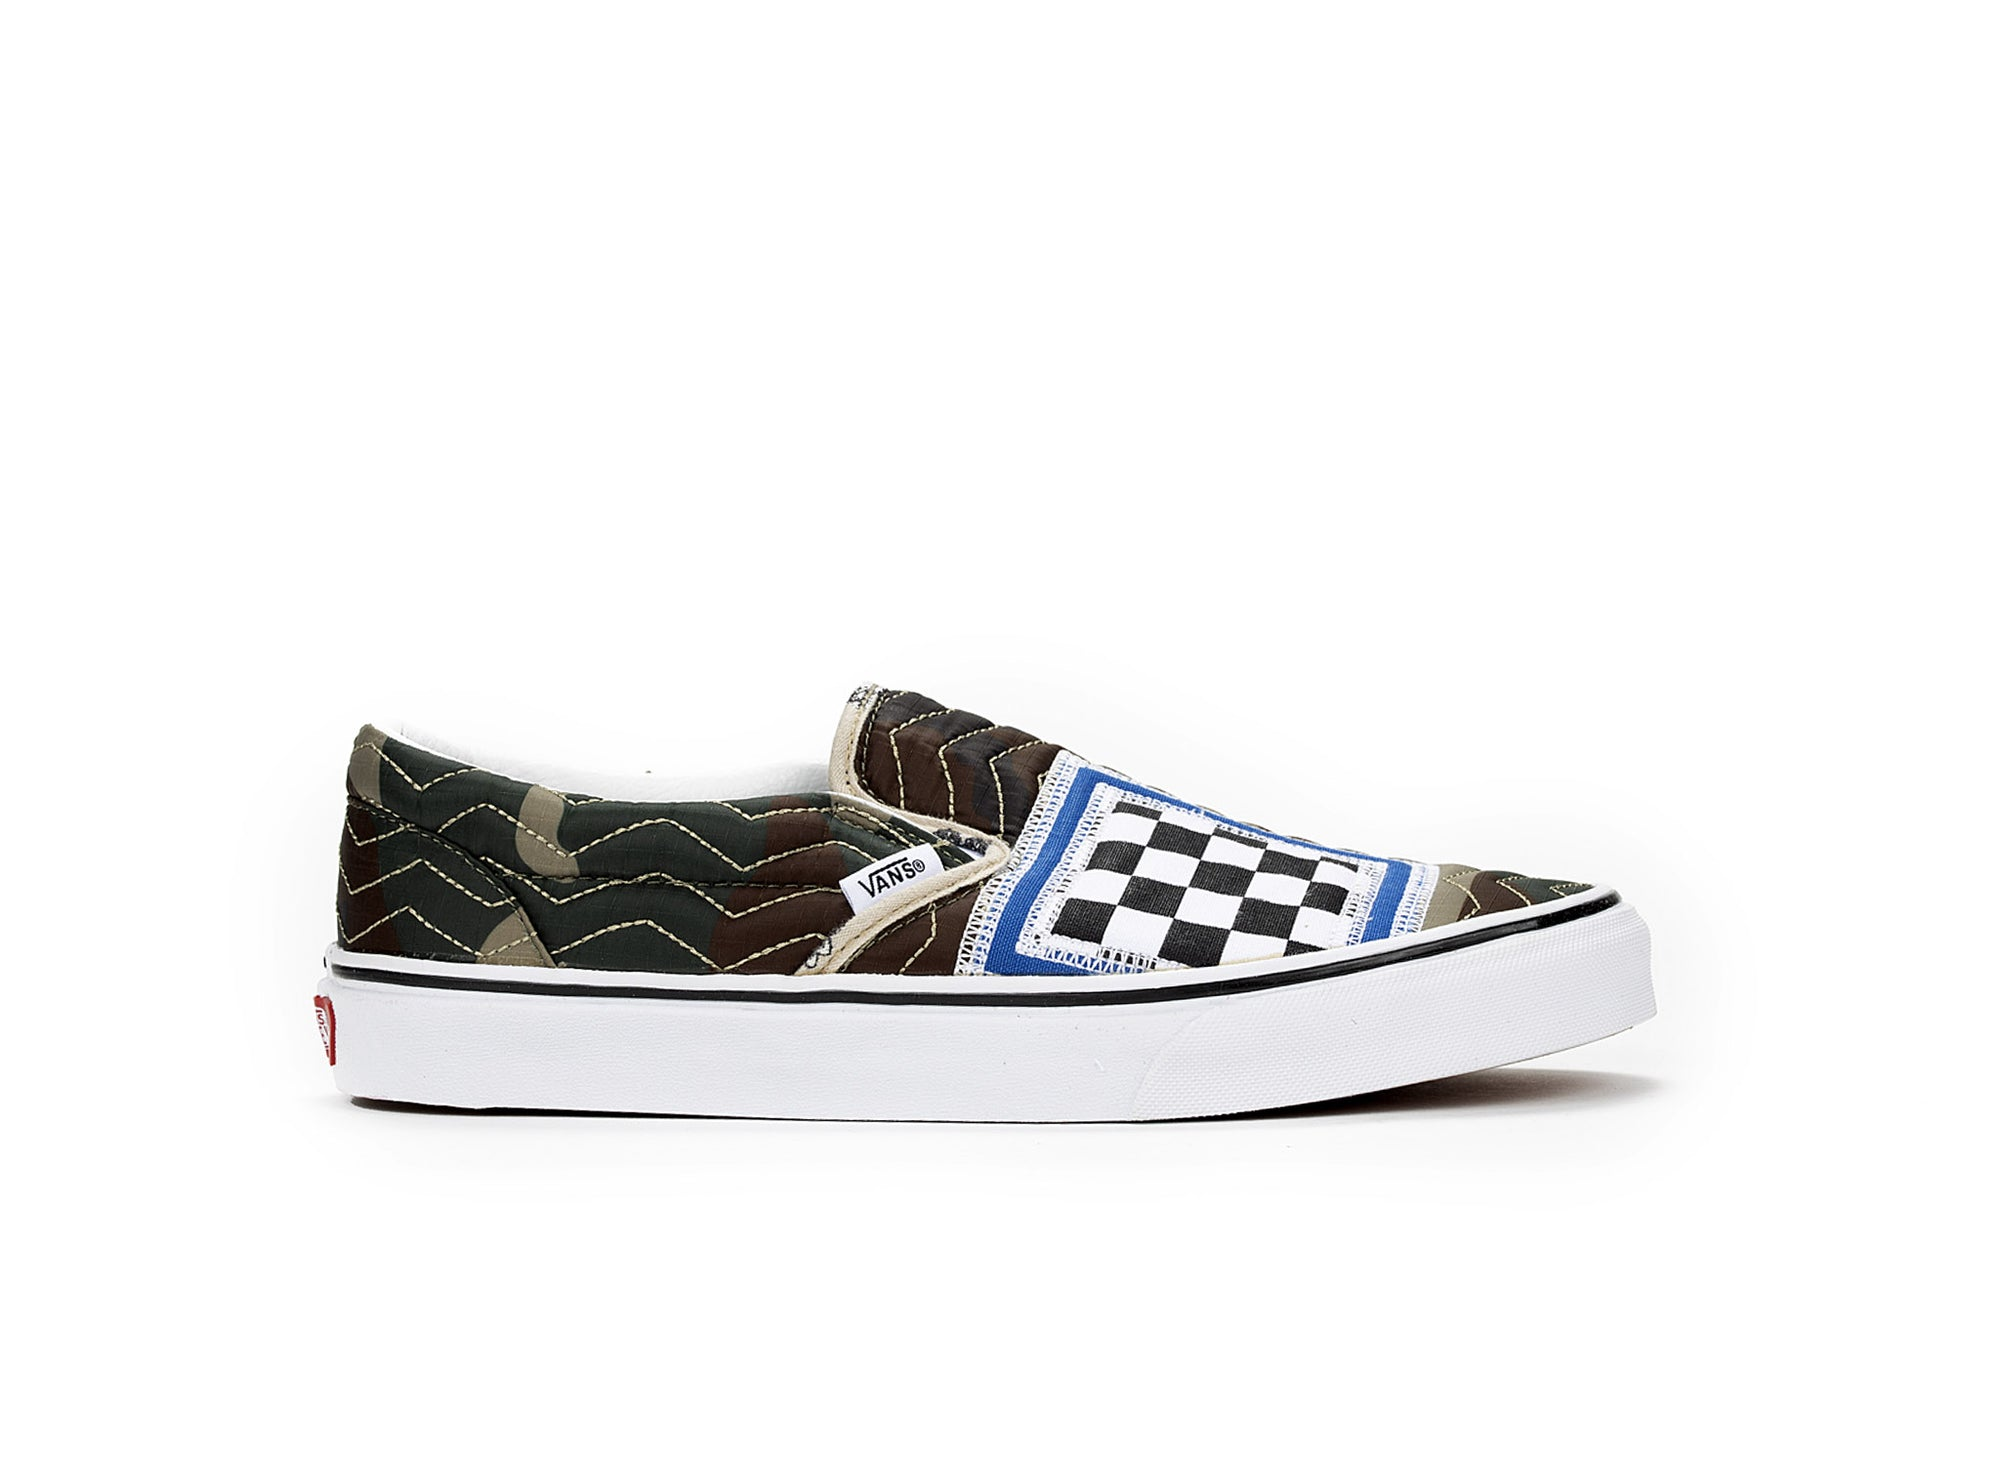 VANS CLASSIC SLIP-ON (MIXED QUILTING)